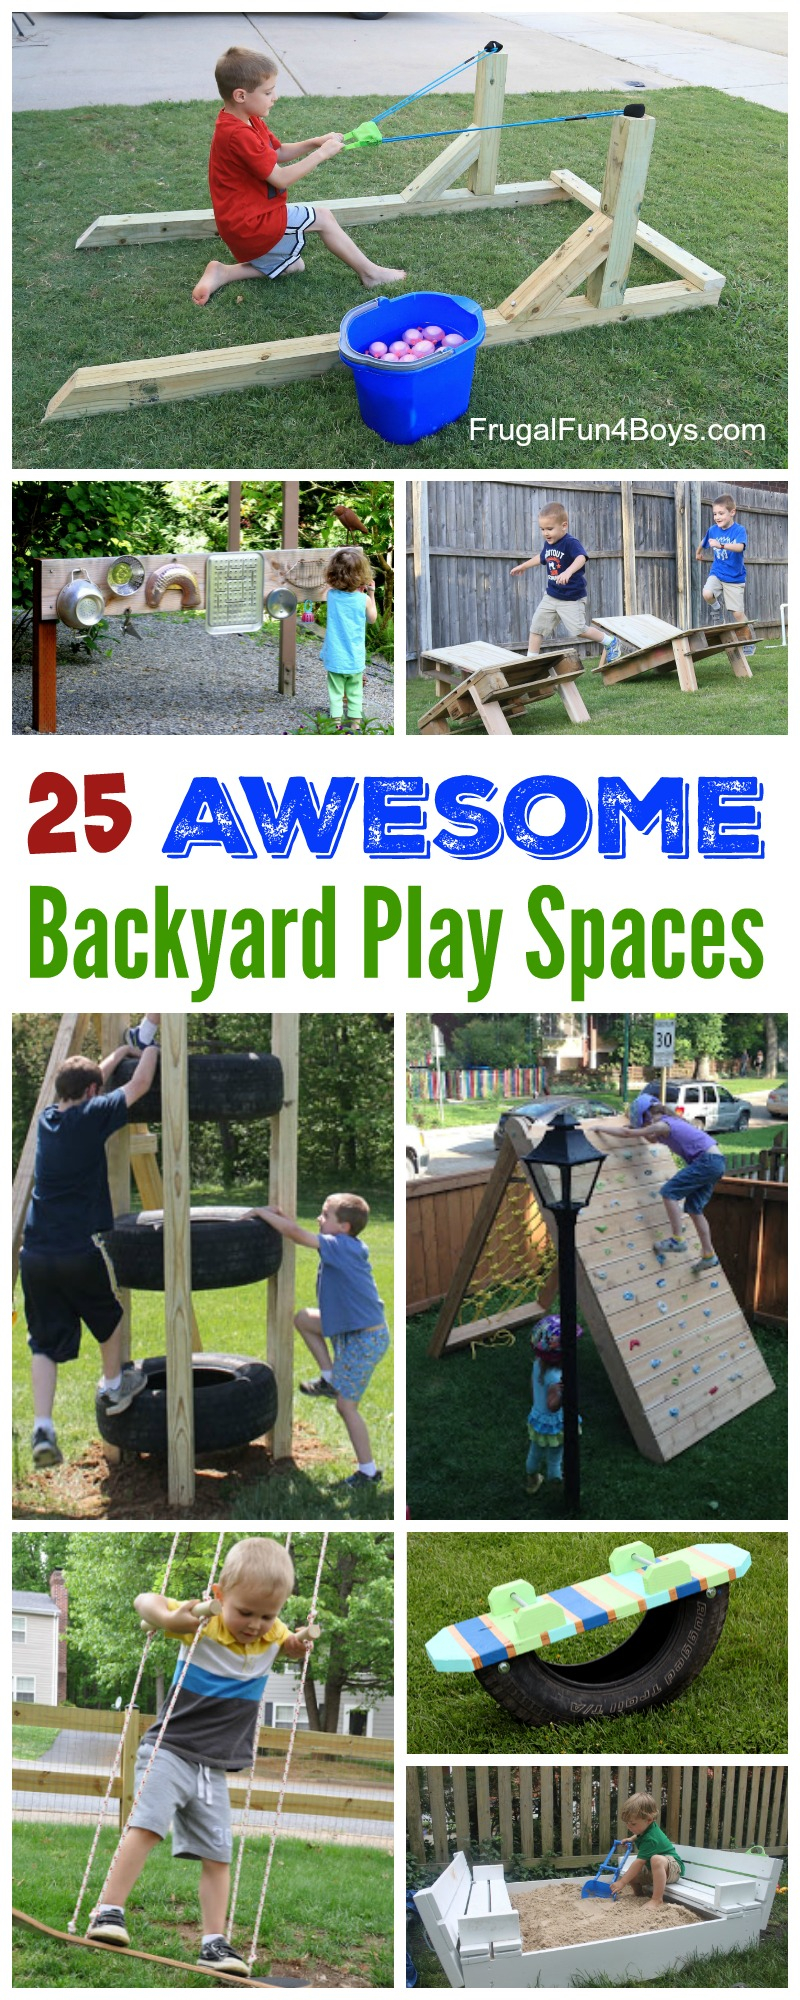 The Best Backyard Diy Projects For Your Outdoor Play Space throughout Backyard Ideas For Toddlers